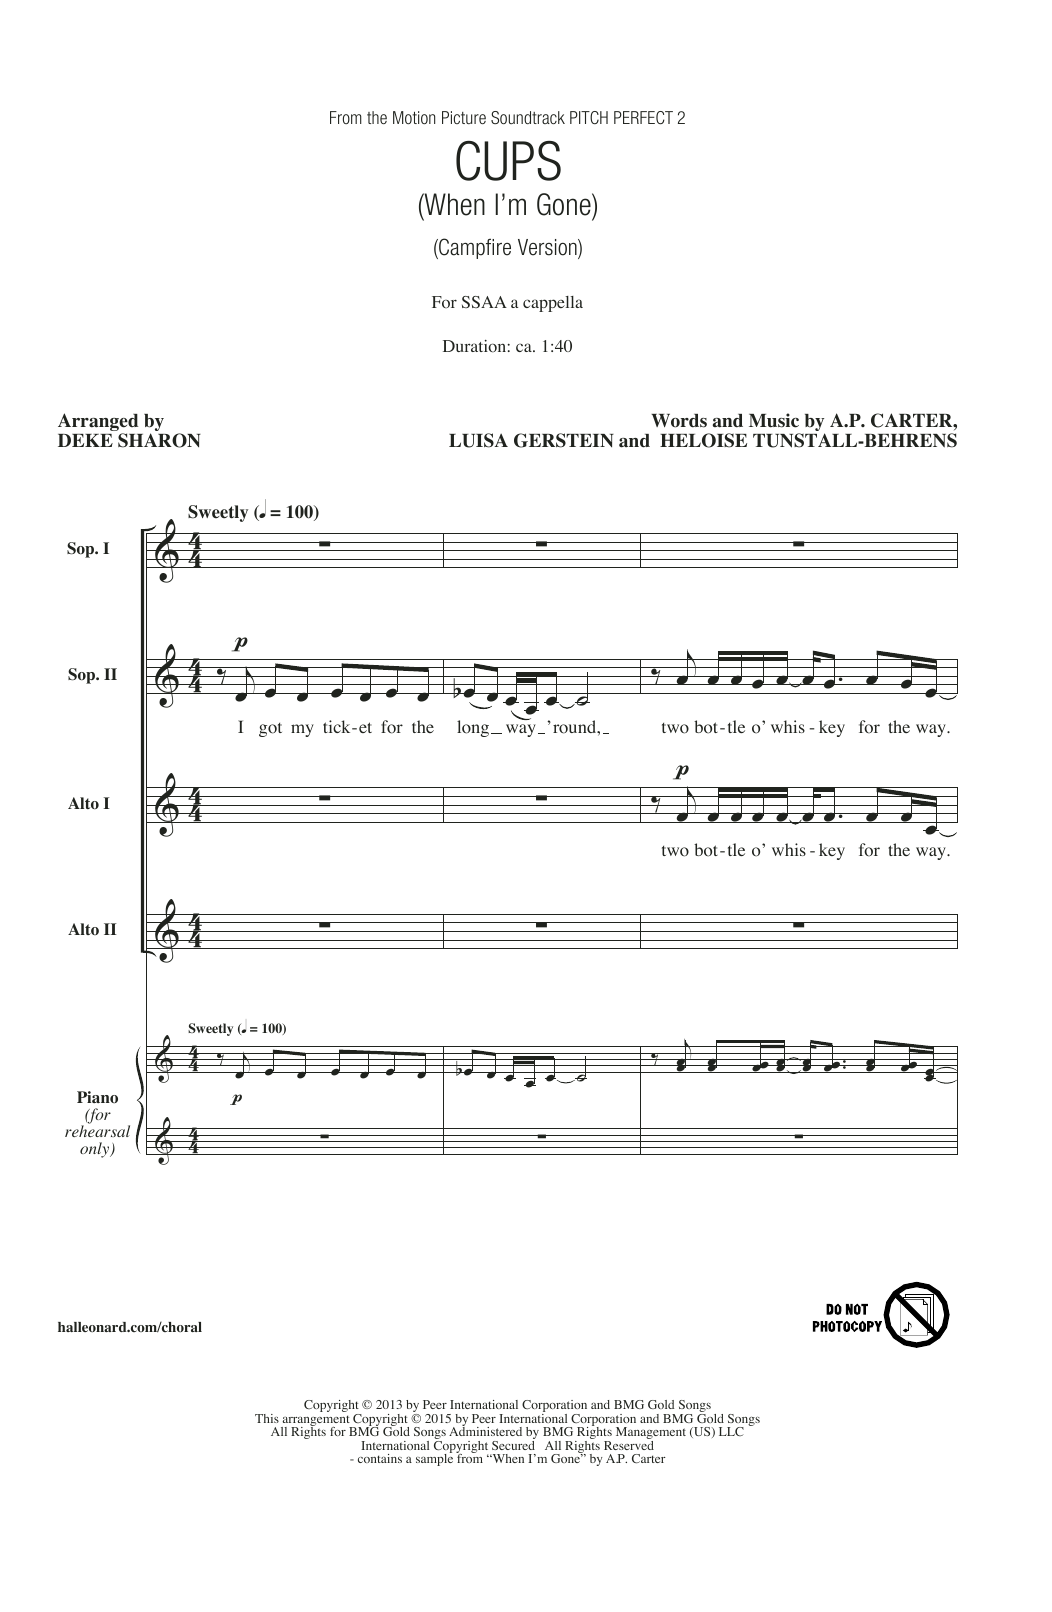 Anna Kendrick Cups (When I'm Gone) (Campfire Version) (from Pitch Perfect 2) (arr. Deke Sharon) sheet music notes and chords. Download Printable PDF.